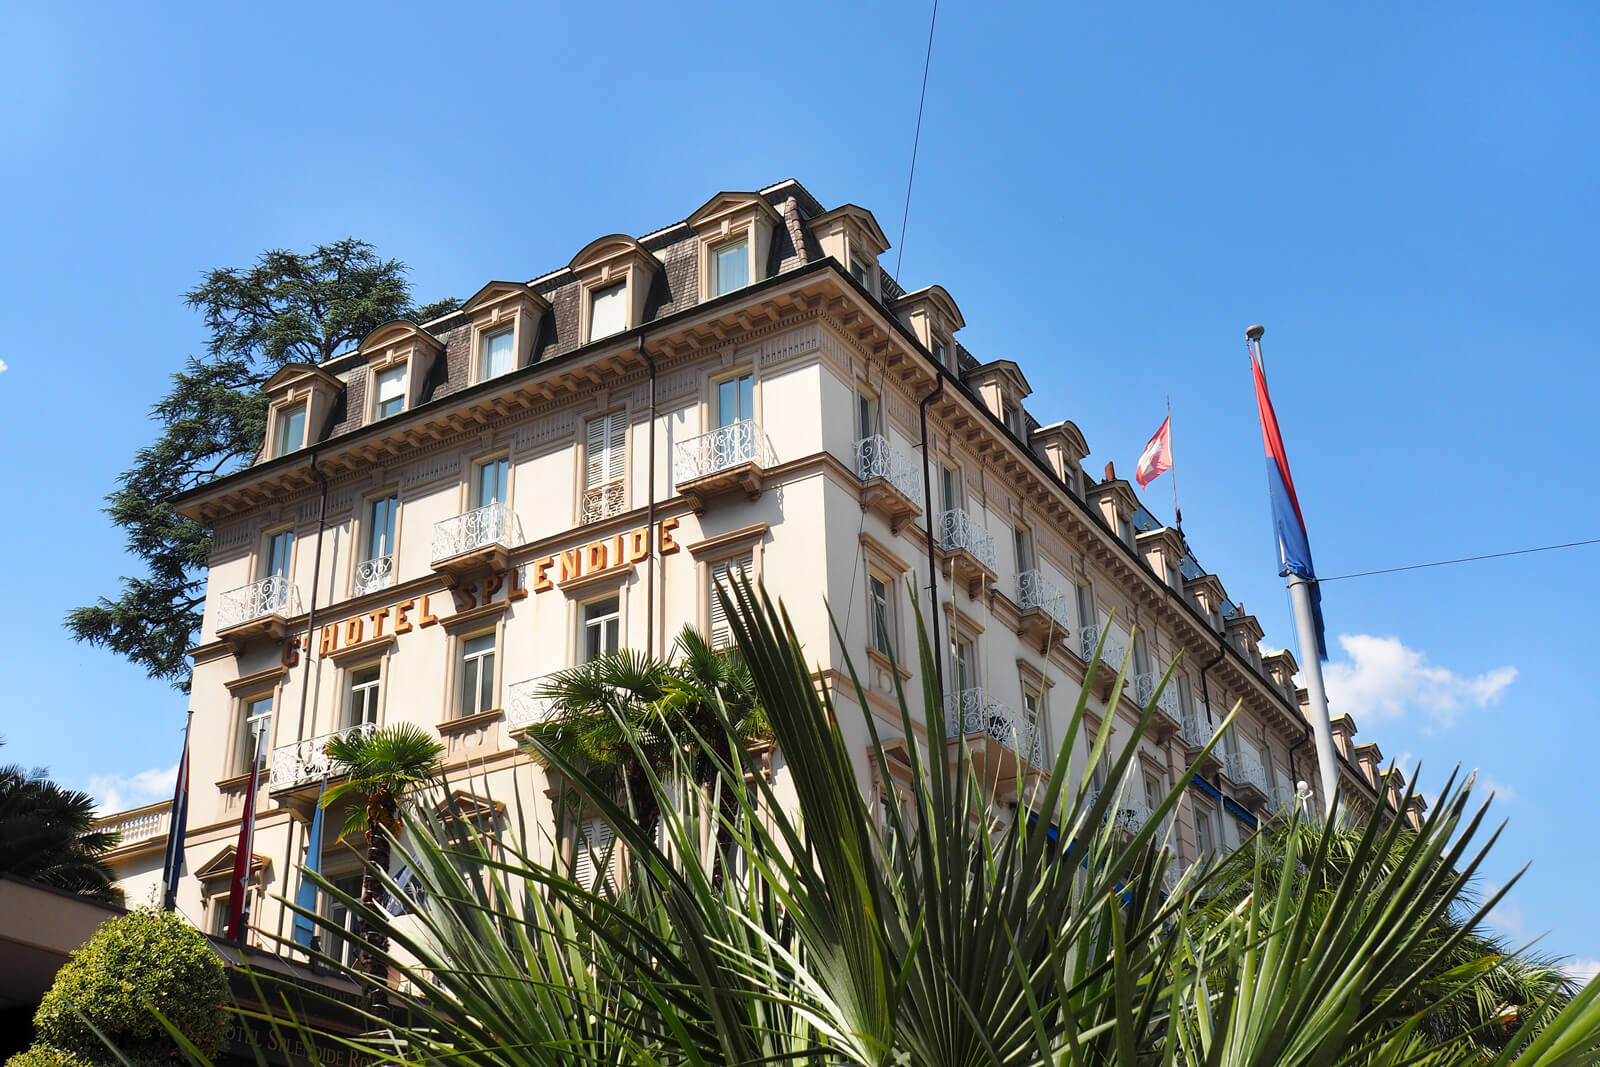 Hotel Splendide Royal in Lugano, Switzerland